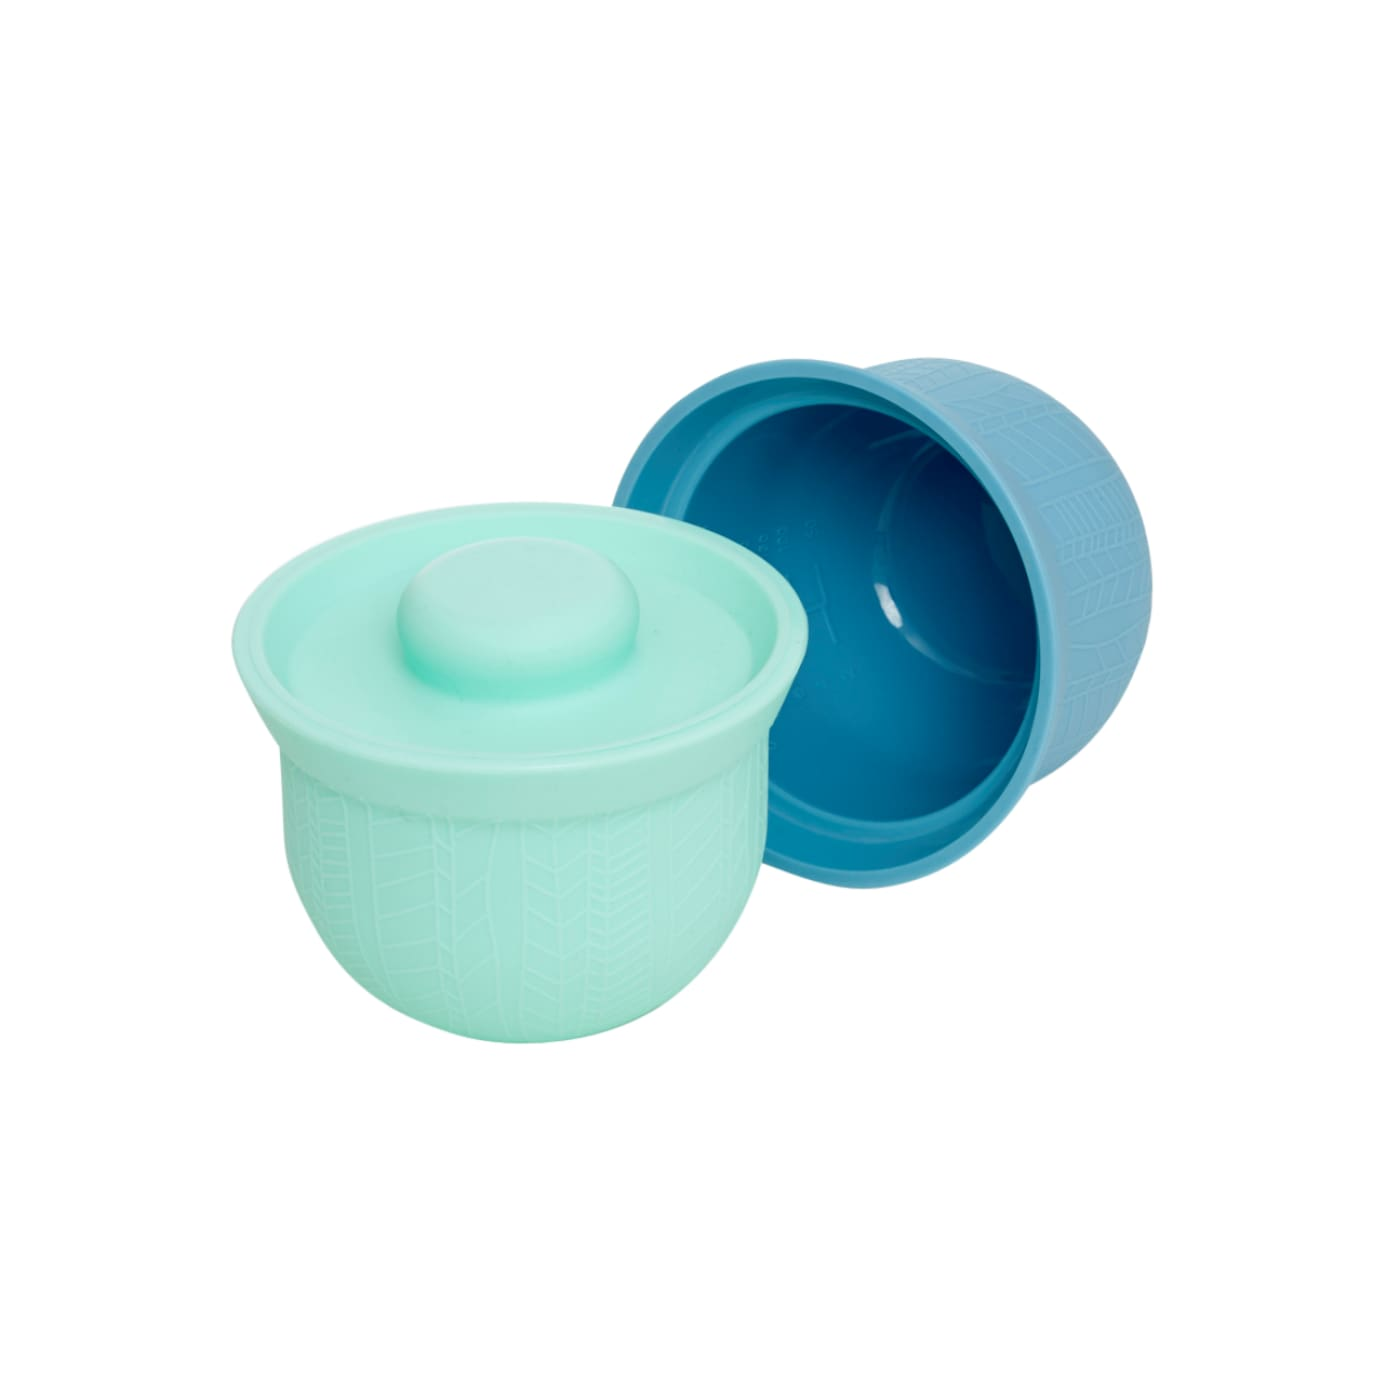 Weanmeister Adora Bowls Mint/Teal - NURSING & FEEDING - CUTLERY/PLATES/BOWLS/TOYS